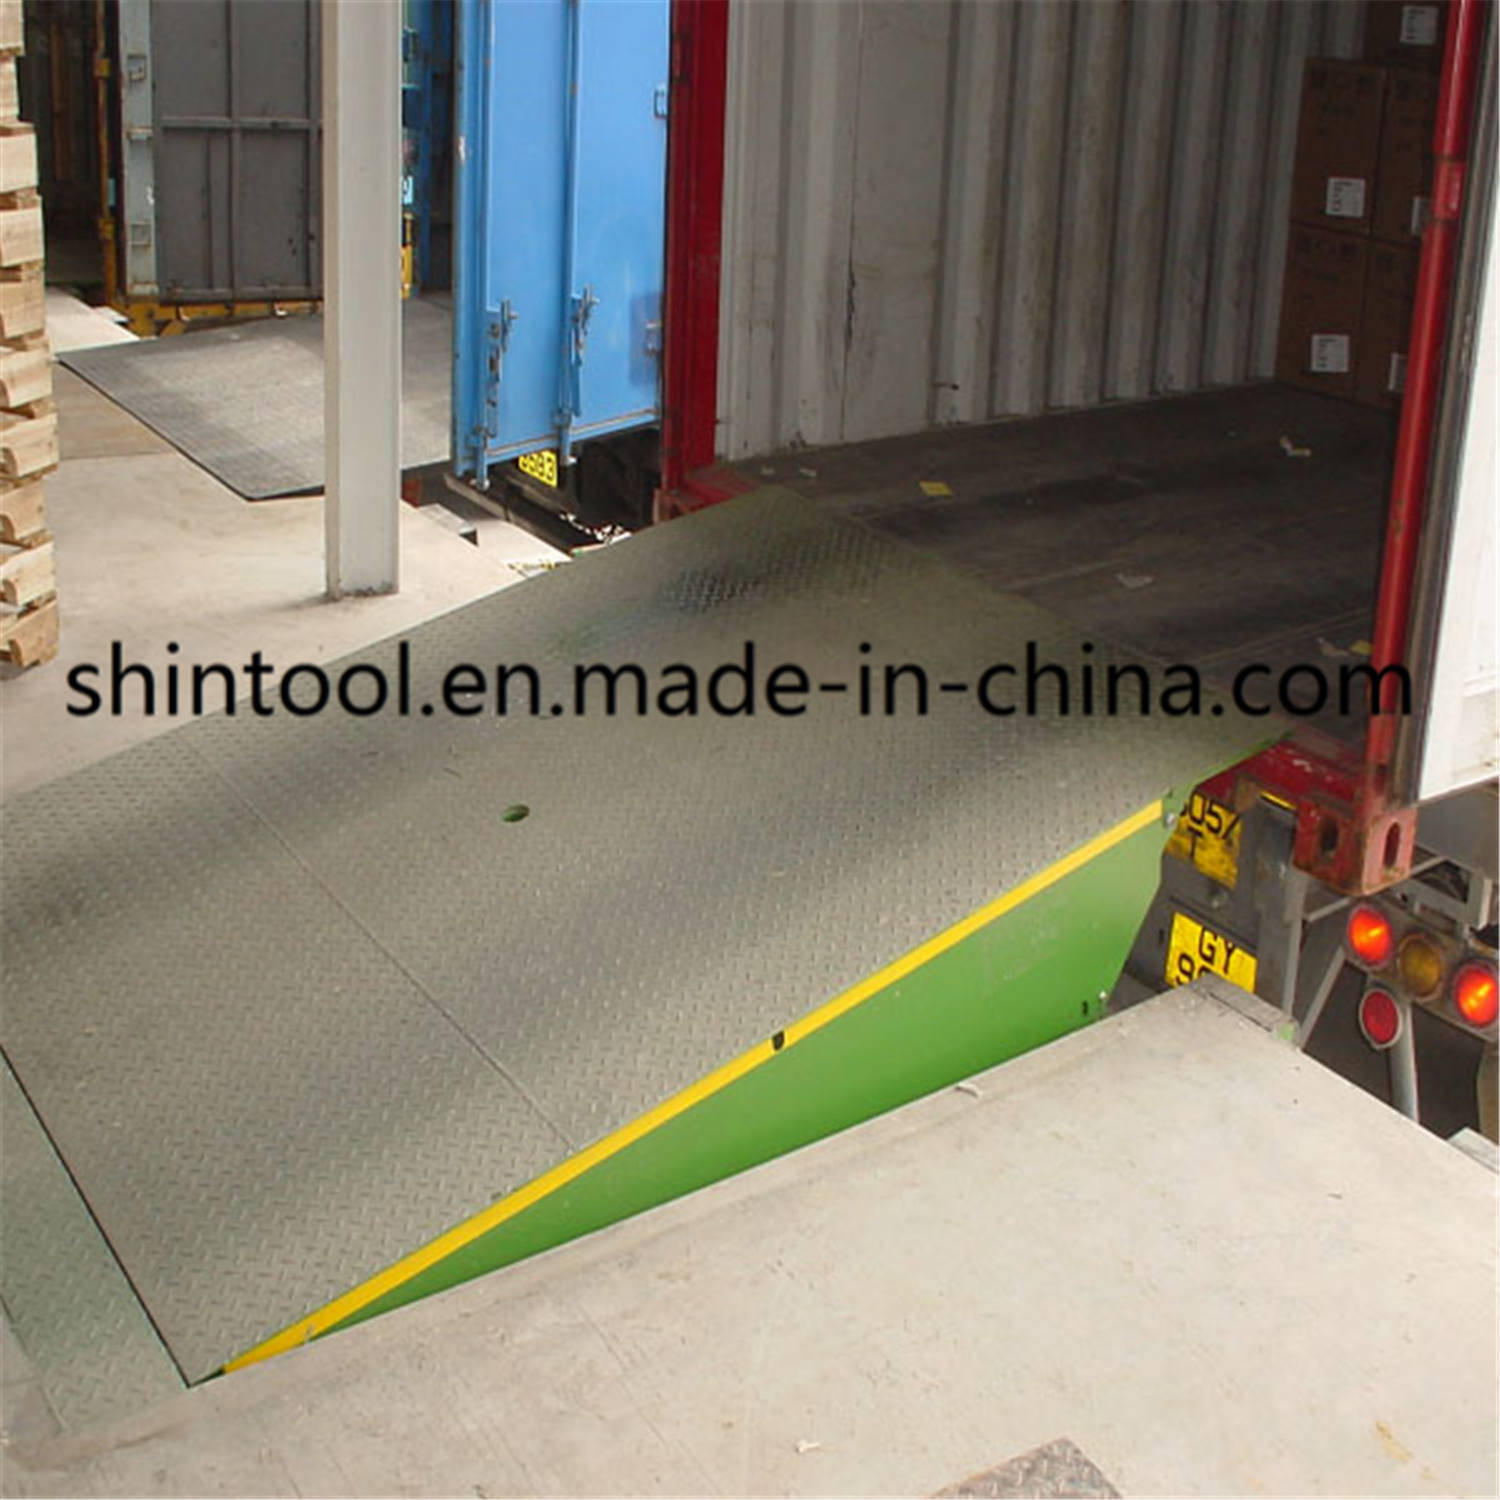 6 Ton Fixed Loading Ramp Dcq6-0.7 with 2500*2000mm Platform Size